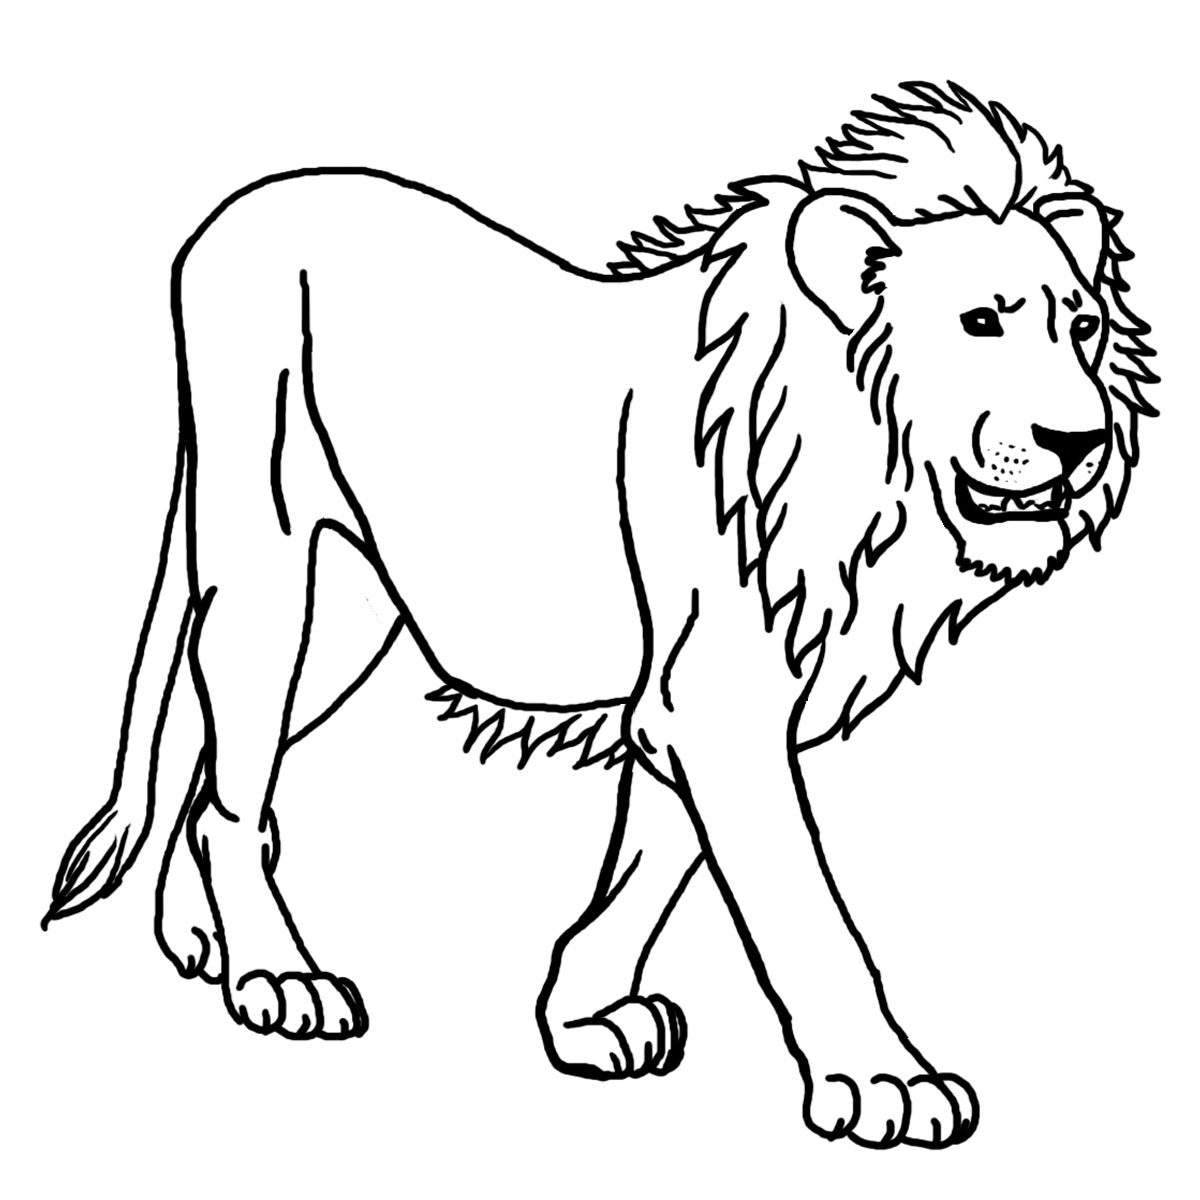 printable pictures of lions lion free to color for children lion kids coloring pages of printable pictures lions